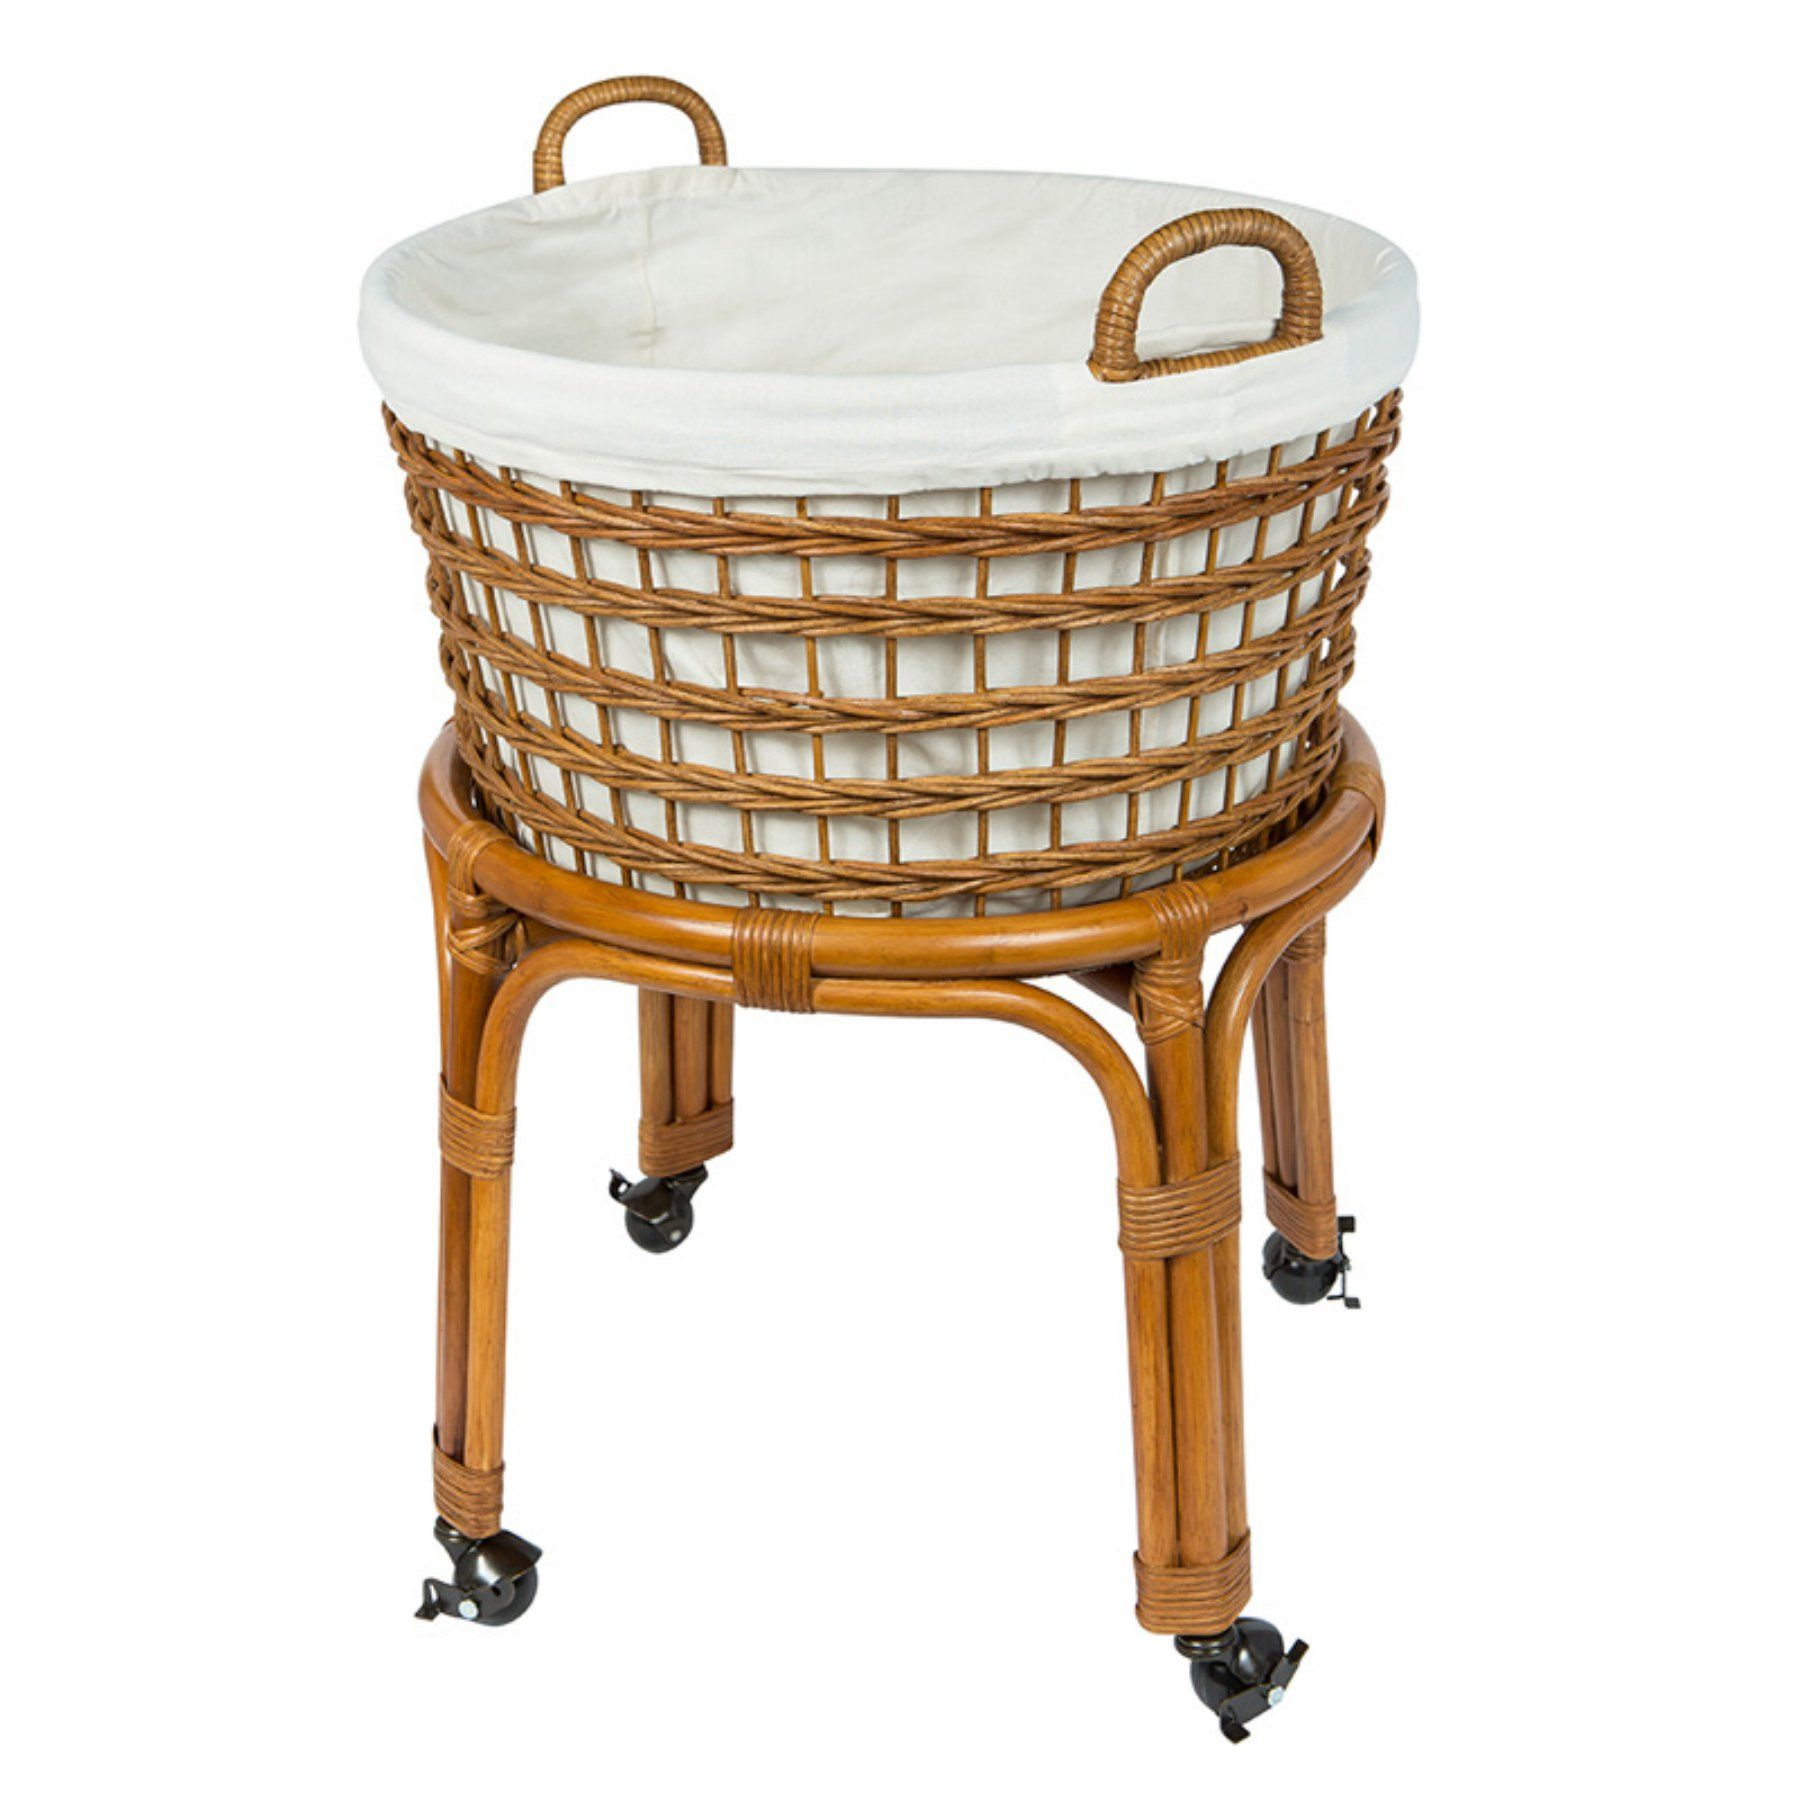 Kouboo Llc Rolling Wicker Laundry Basket And Hamper With Cotton